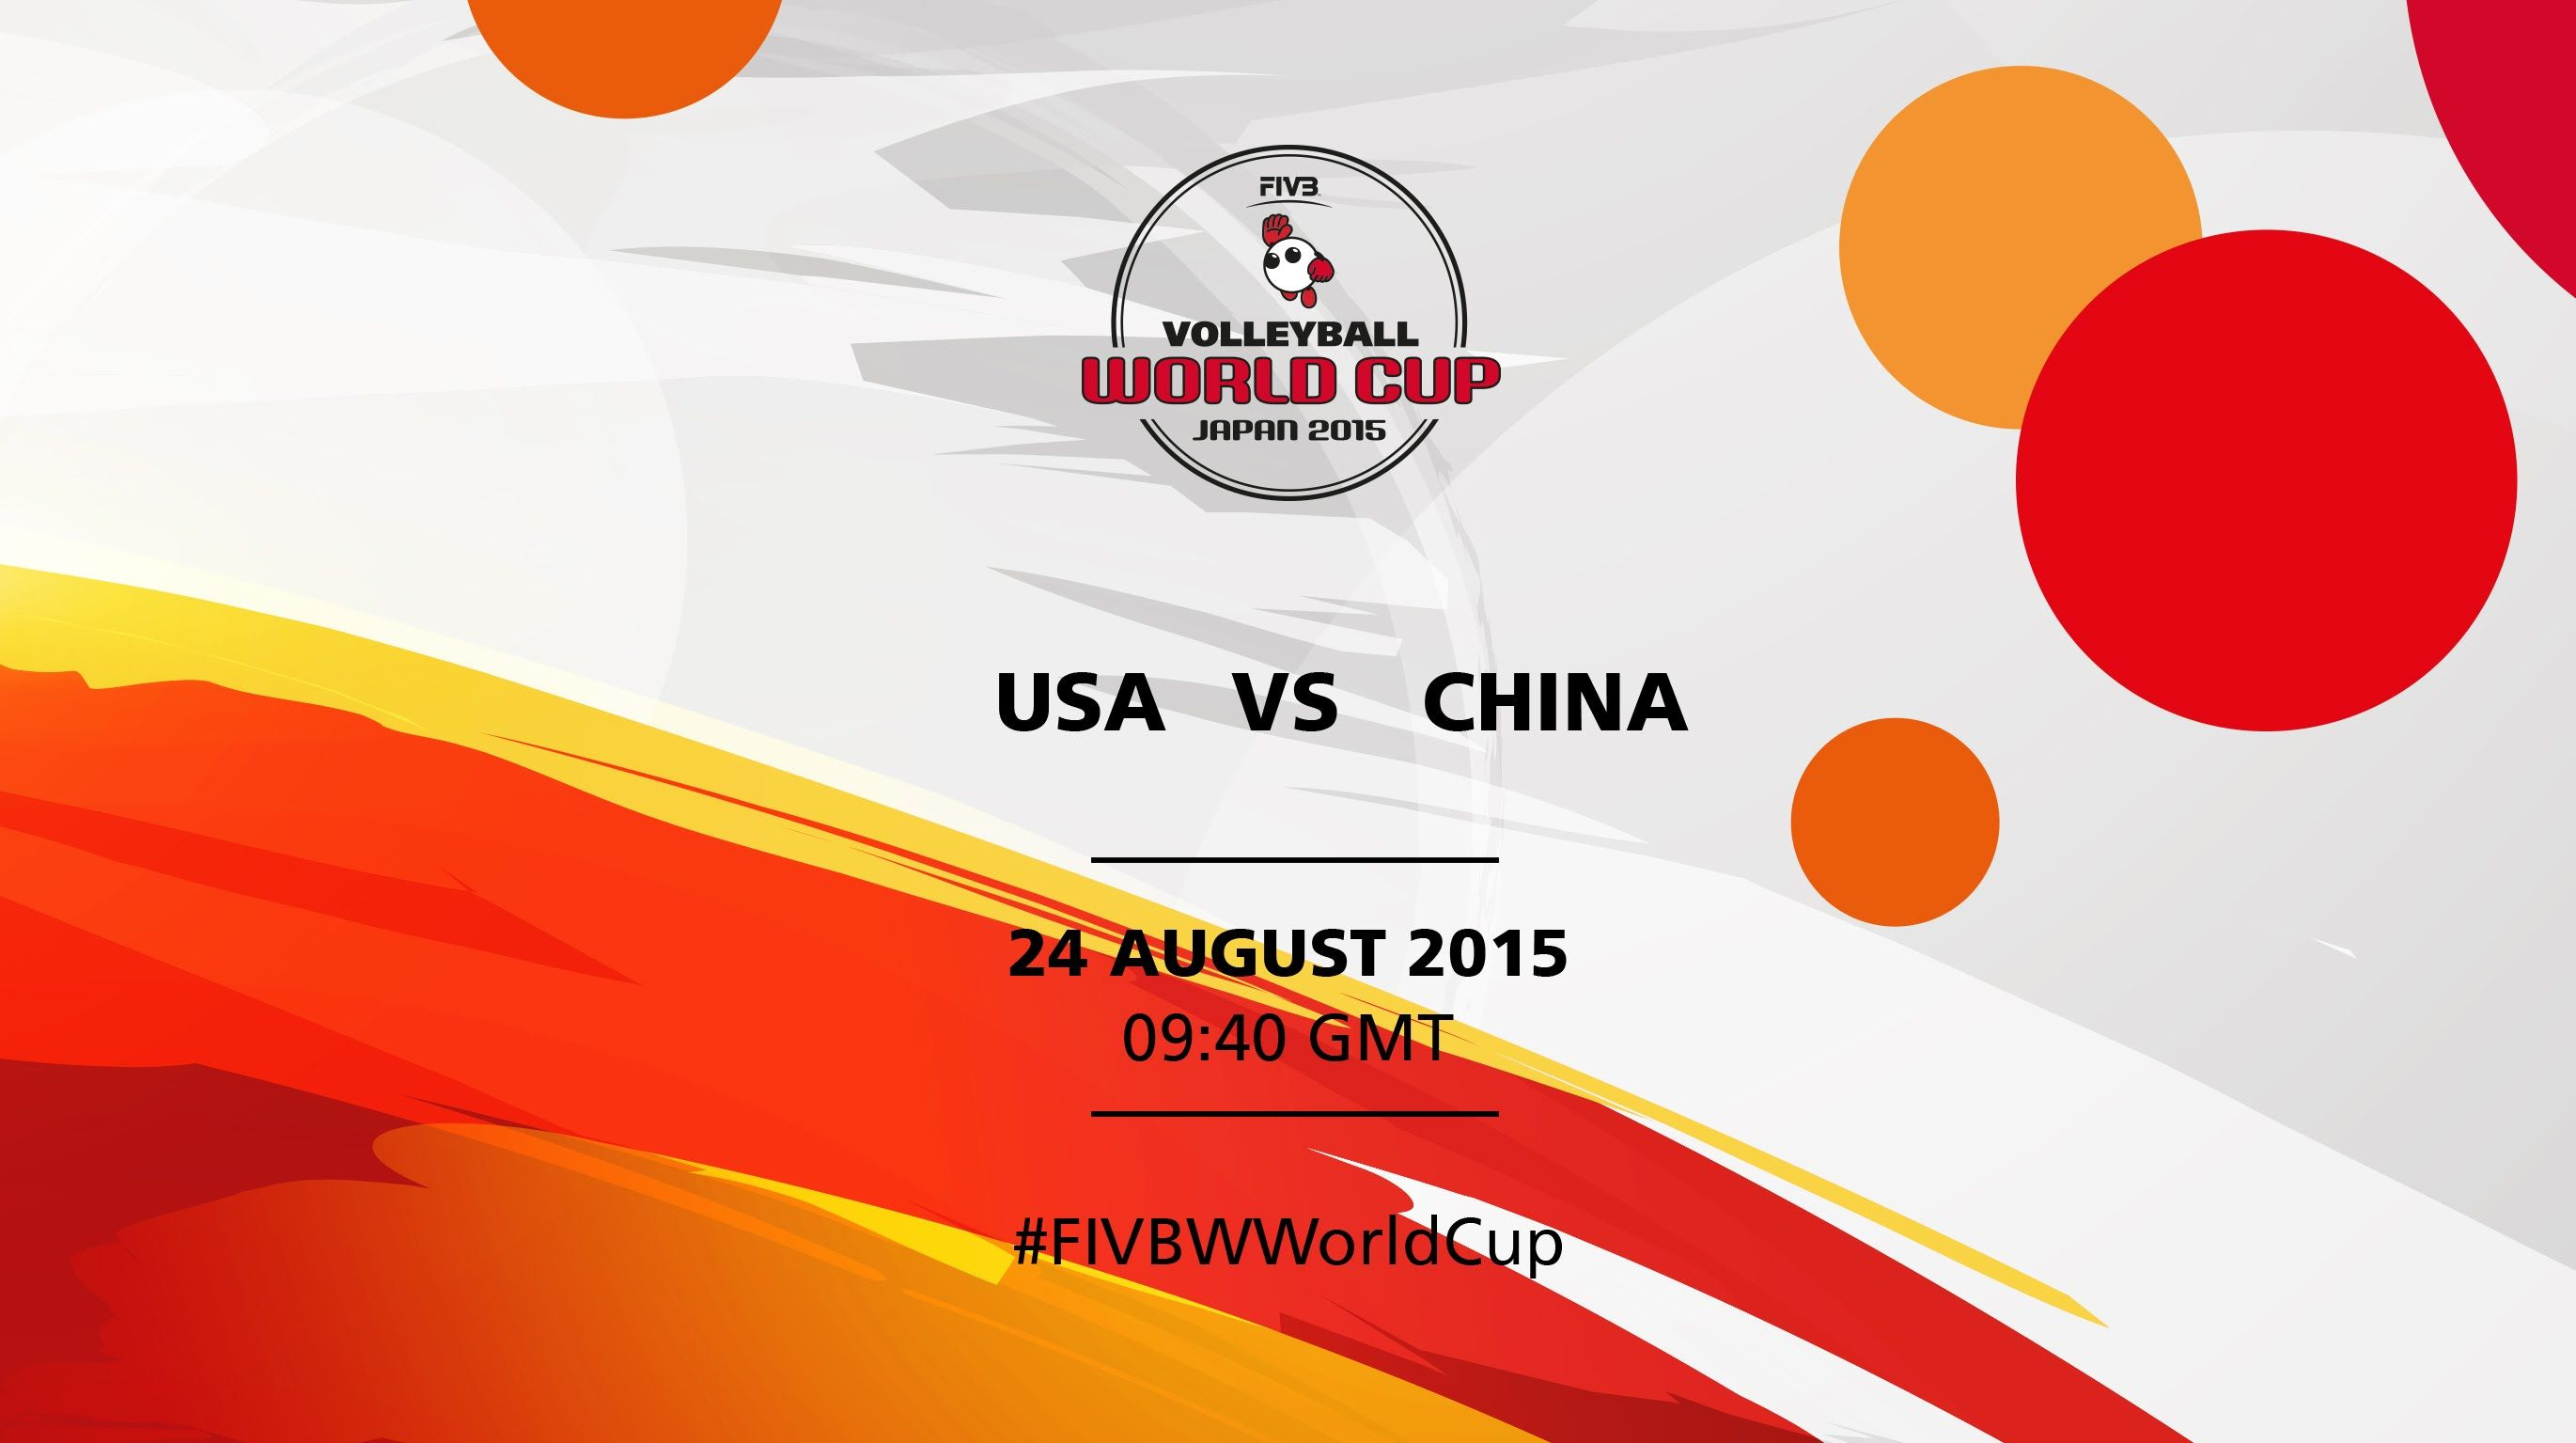 Usa V China Fivb Volleyball Women S World Cup Japan 2015 Mens World Cup Volleyball World Cup